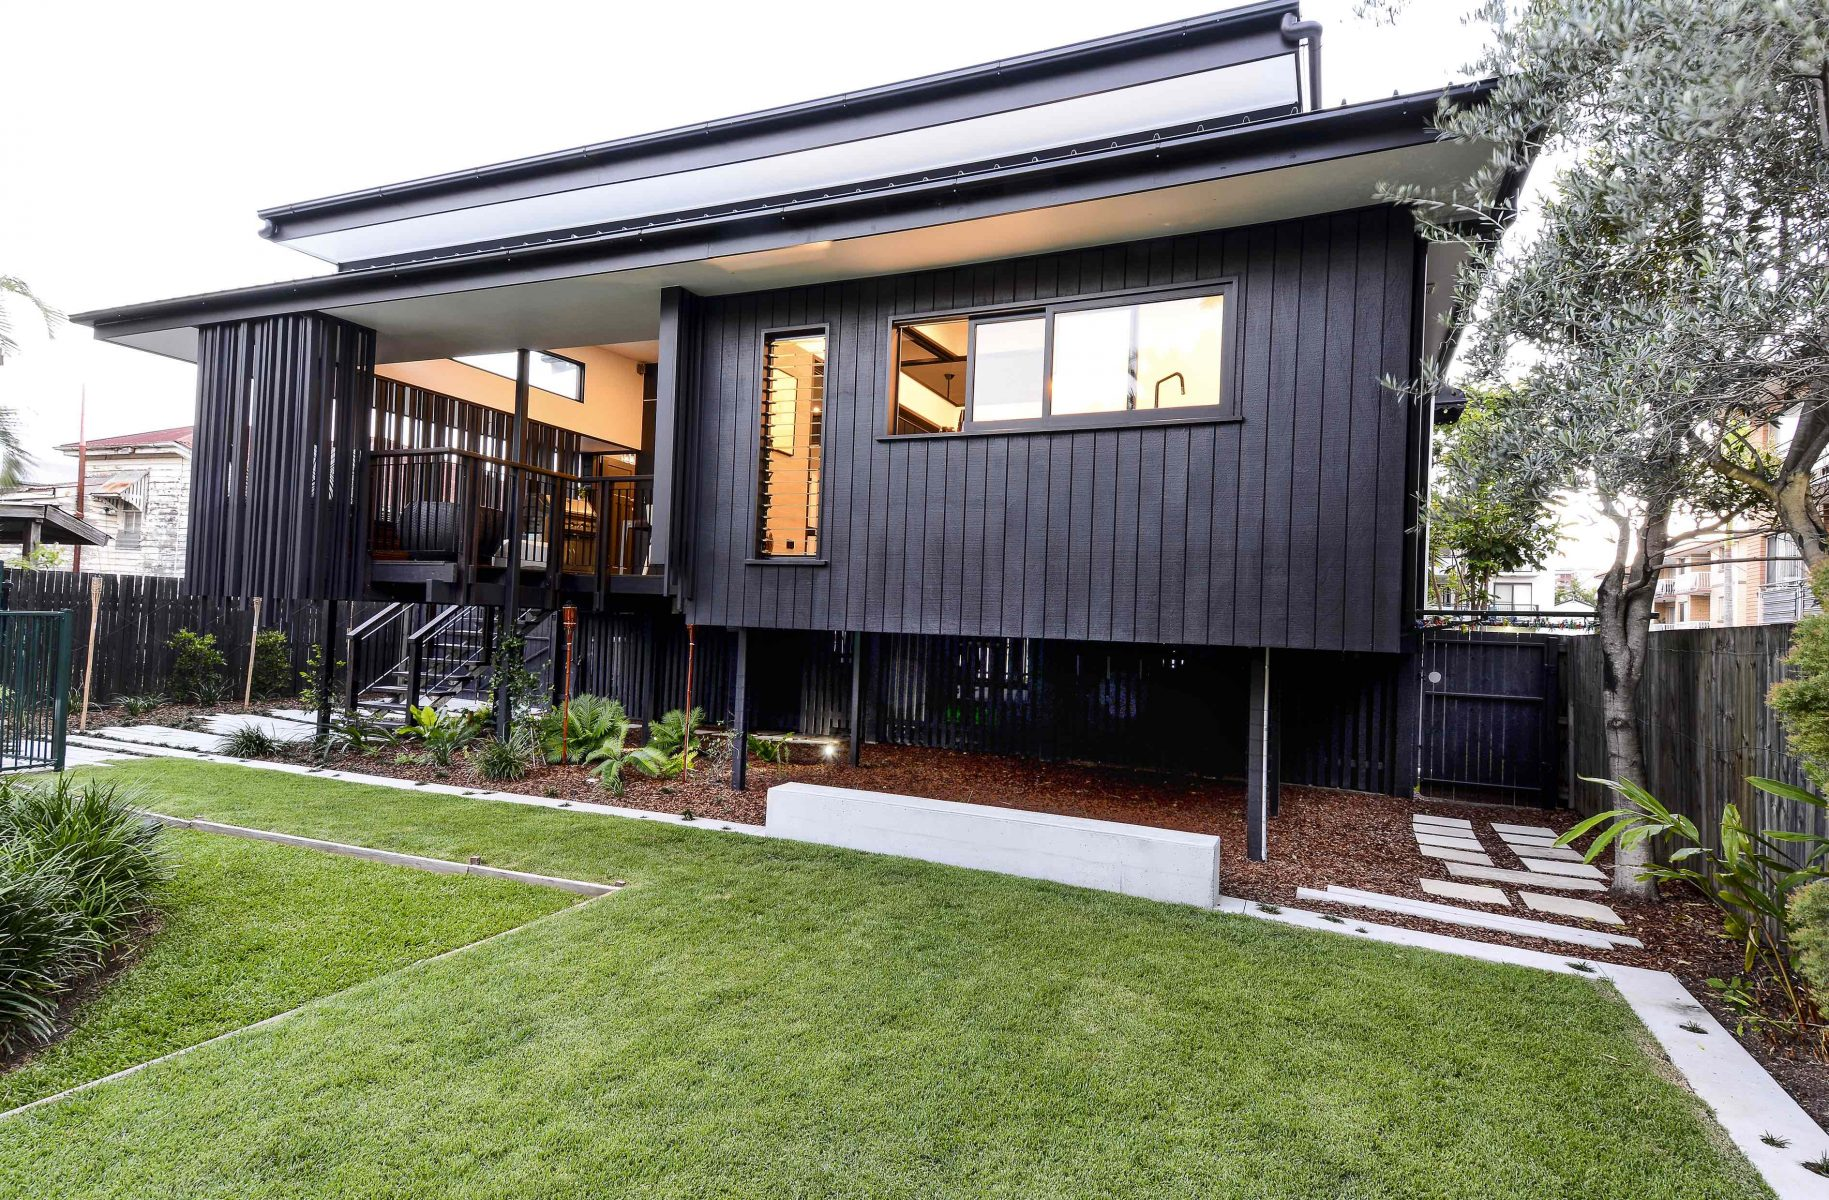 Nat and Gerry's Back Deck by biscoe wilson   architects